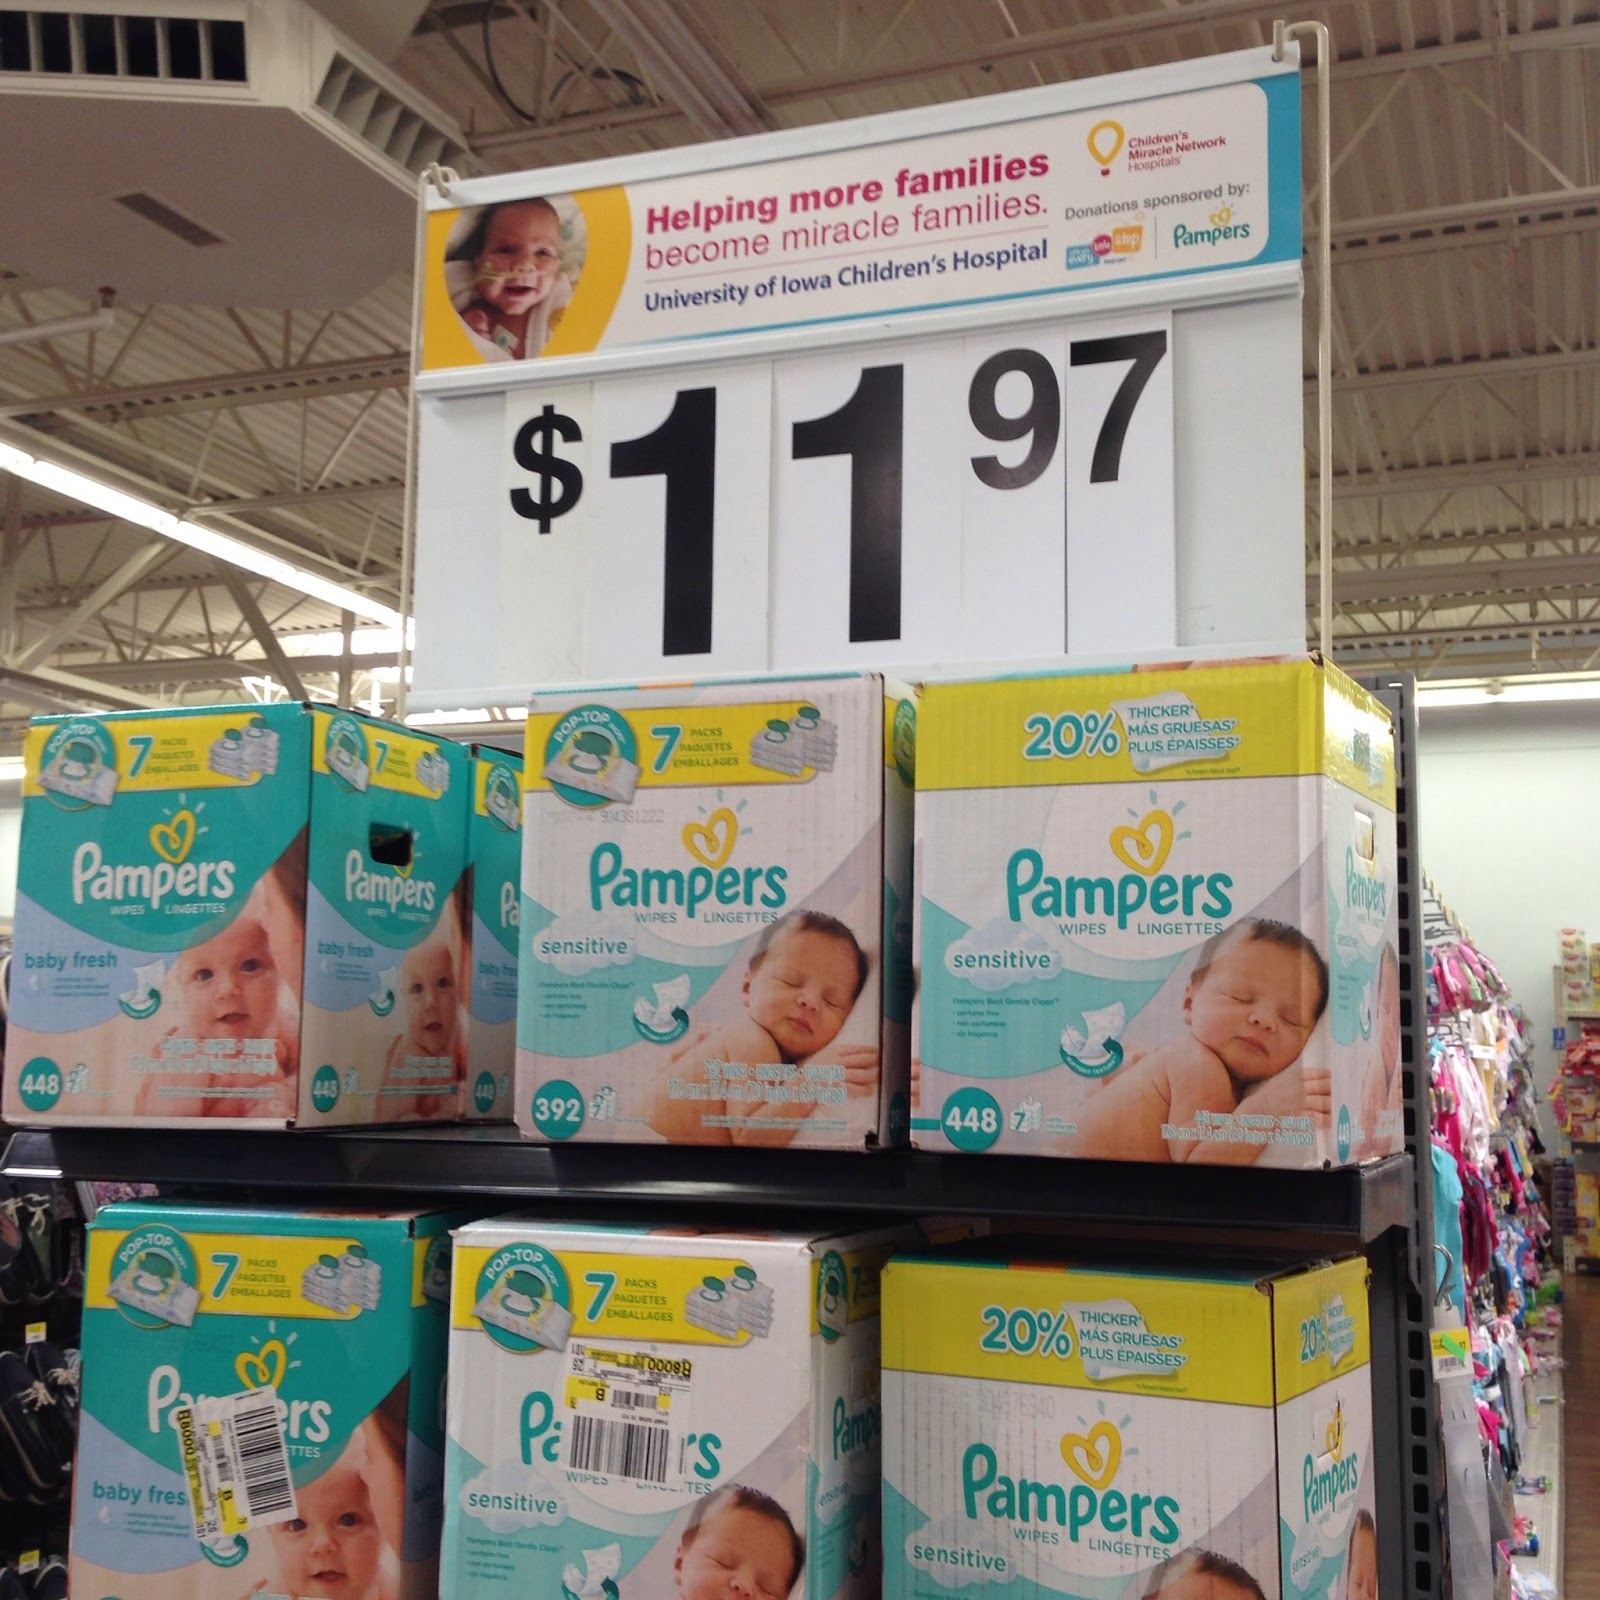 This coupon has reset which makes it an exciting day for anyone still in diaper land!! Pampers has released two new $3 off Pampers Diapers coupons that are .